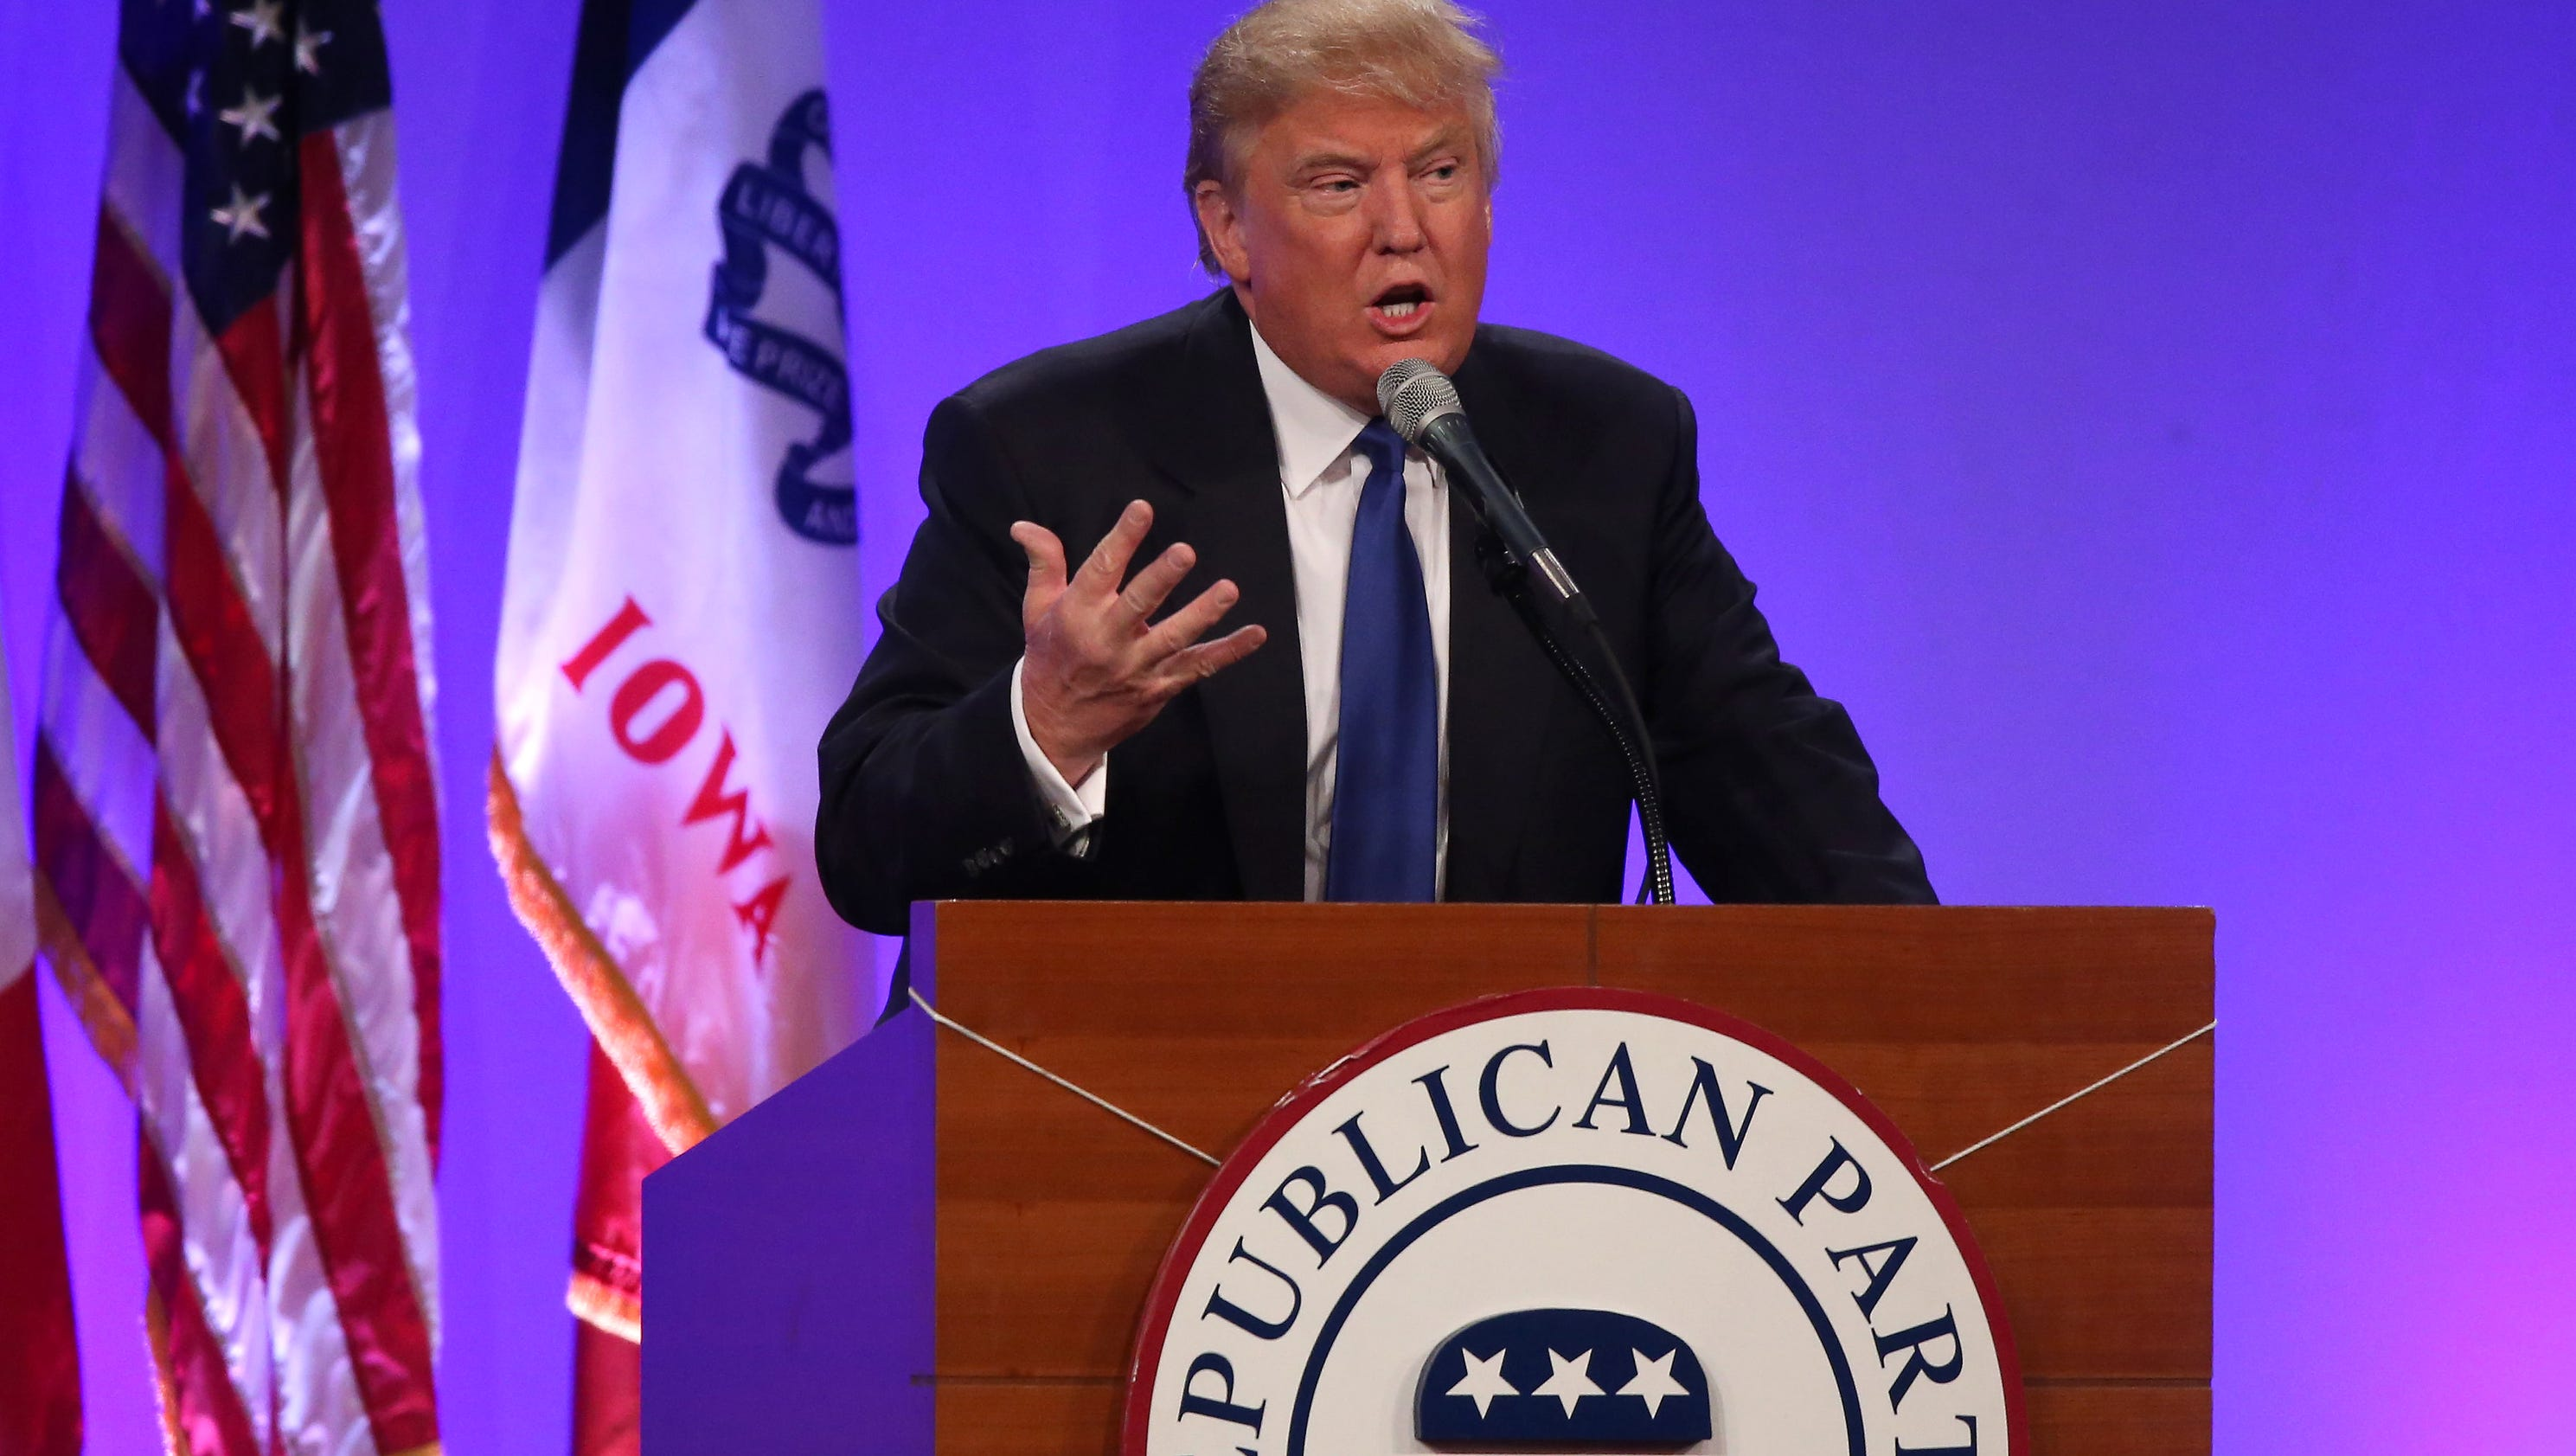 Poll: Many Iowa Republicans say 'never' to Trump